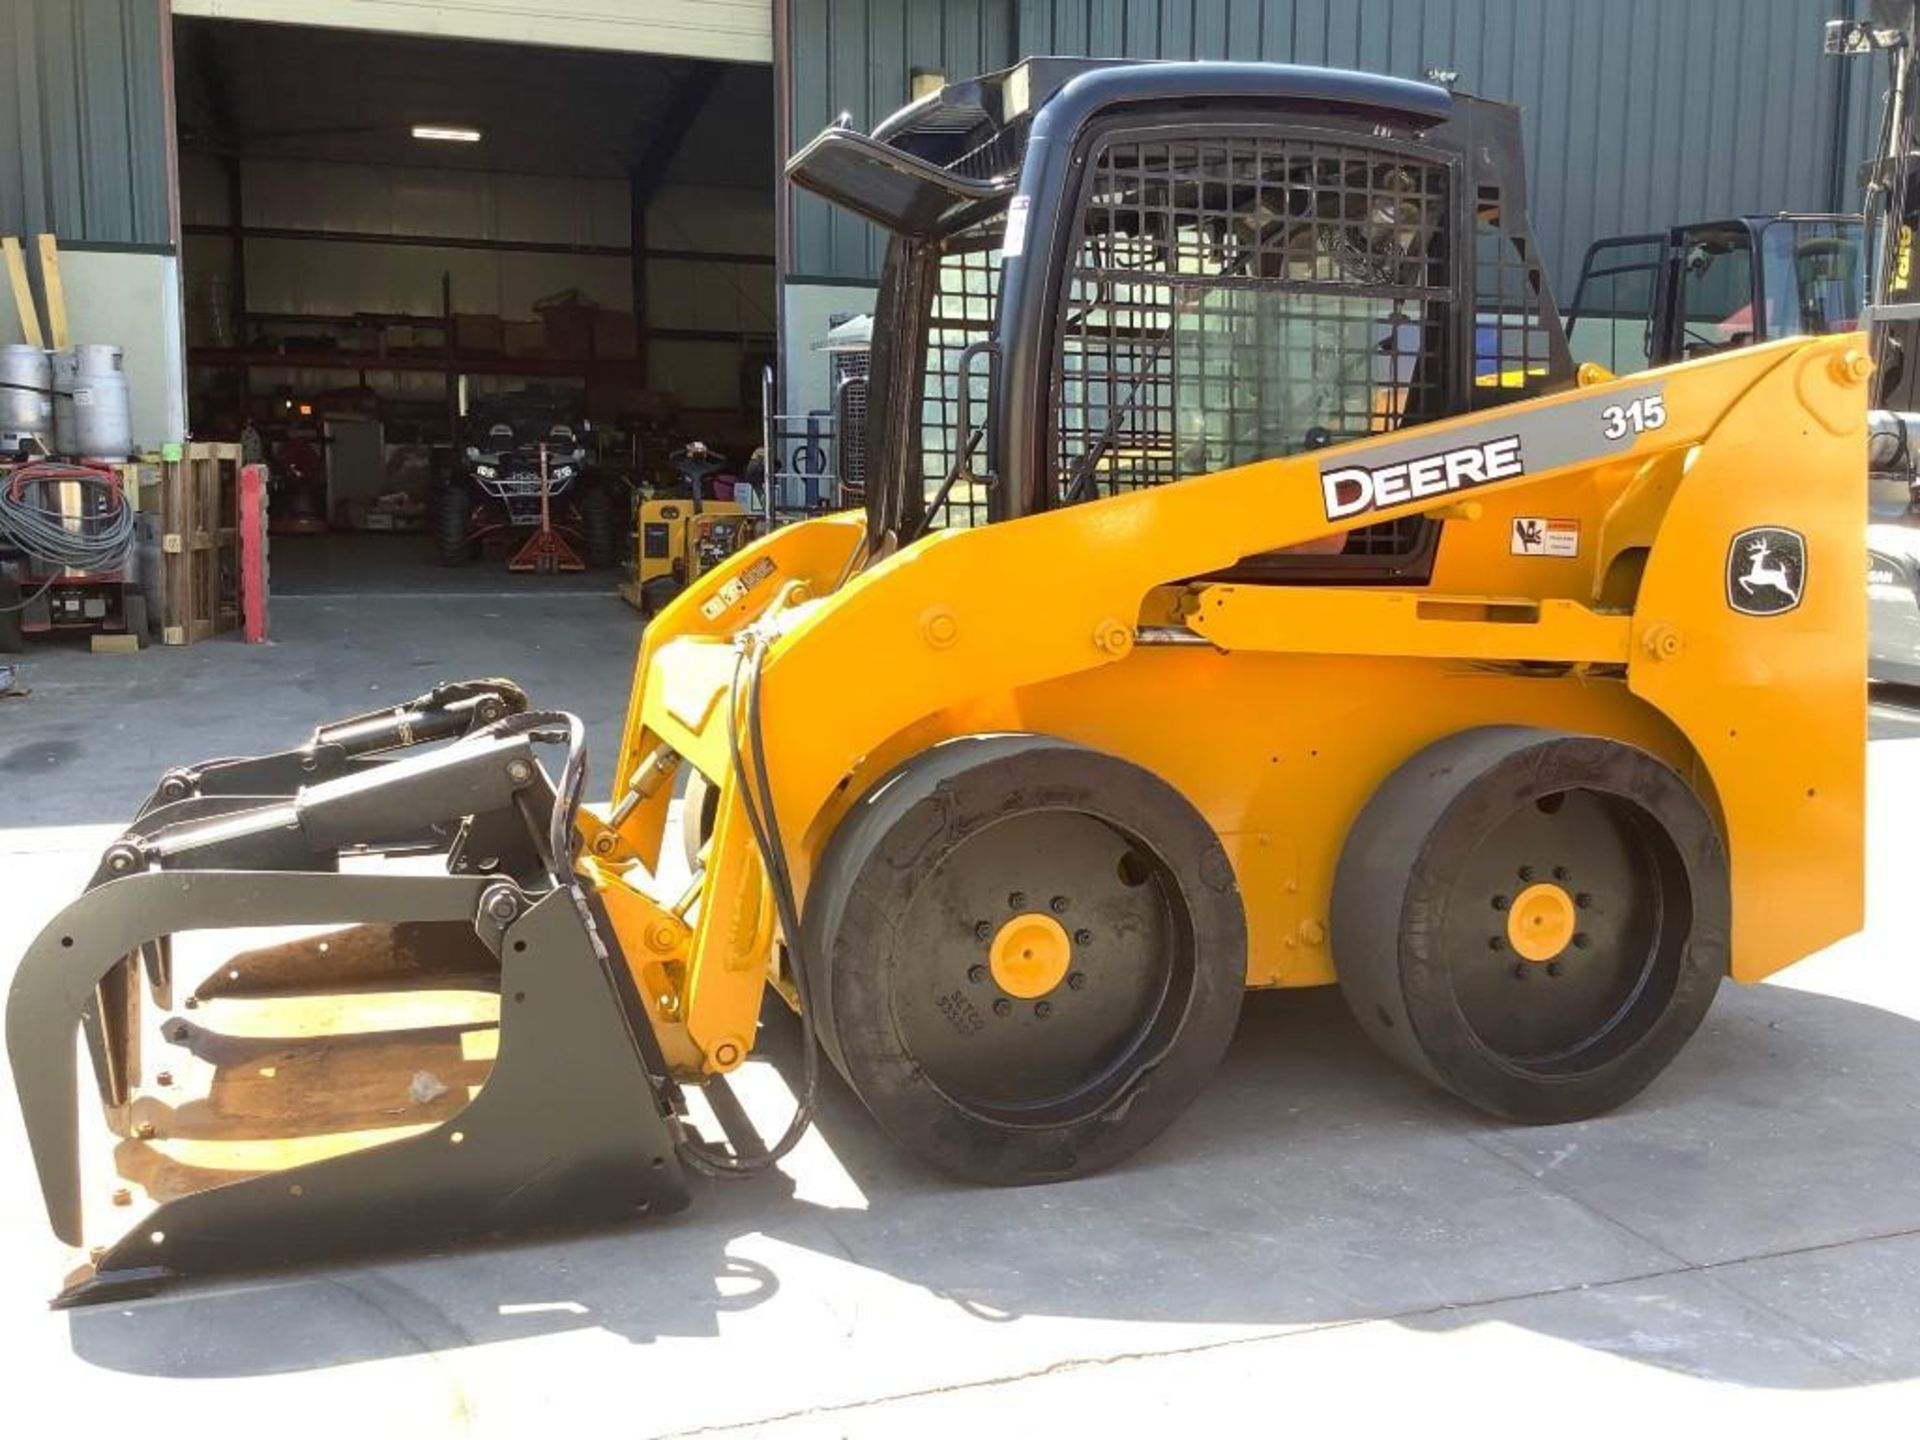 JOHN DEERE SKIDSTEER MODEL 315, DIESEL, GRAPPLE ATTACHMENT, SOLID TIRES, AUX HYDRAULIC, ENCLOSED CAB - Image 7 of 15